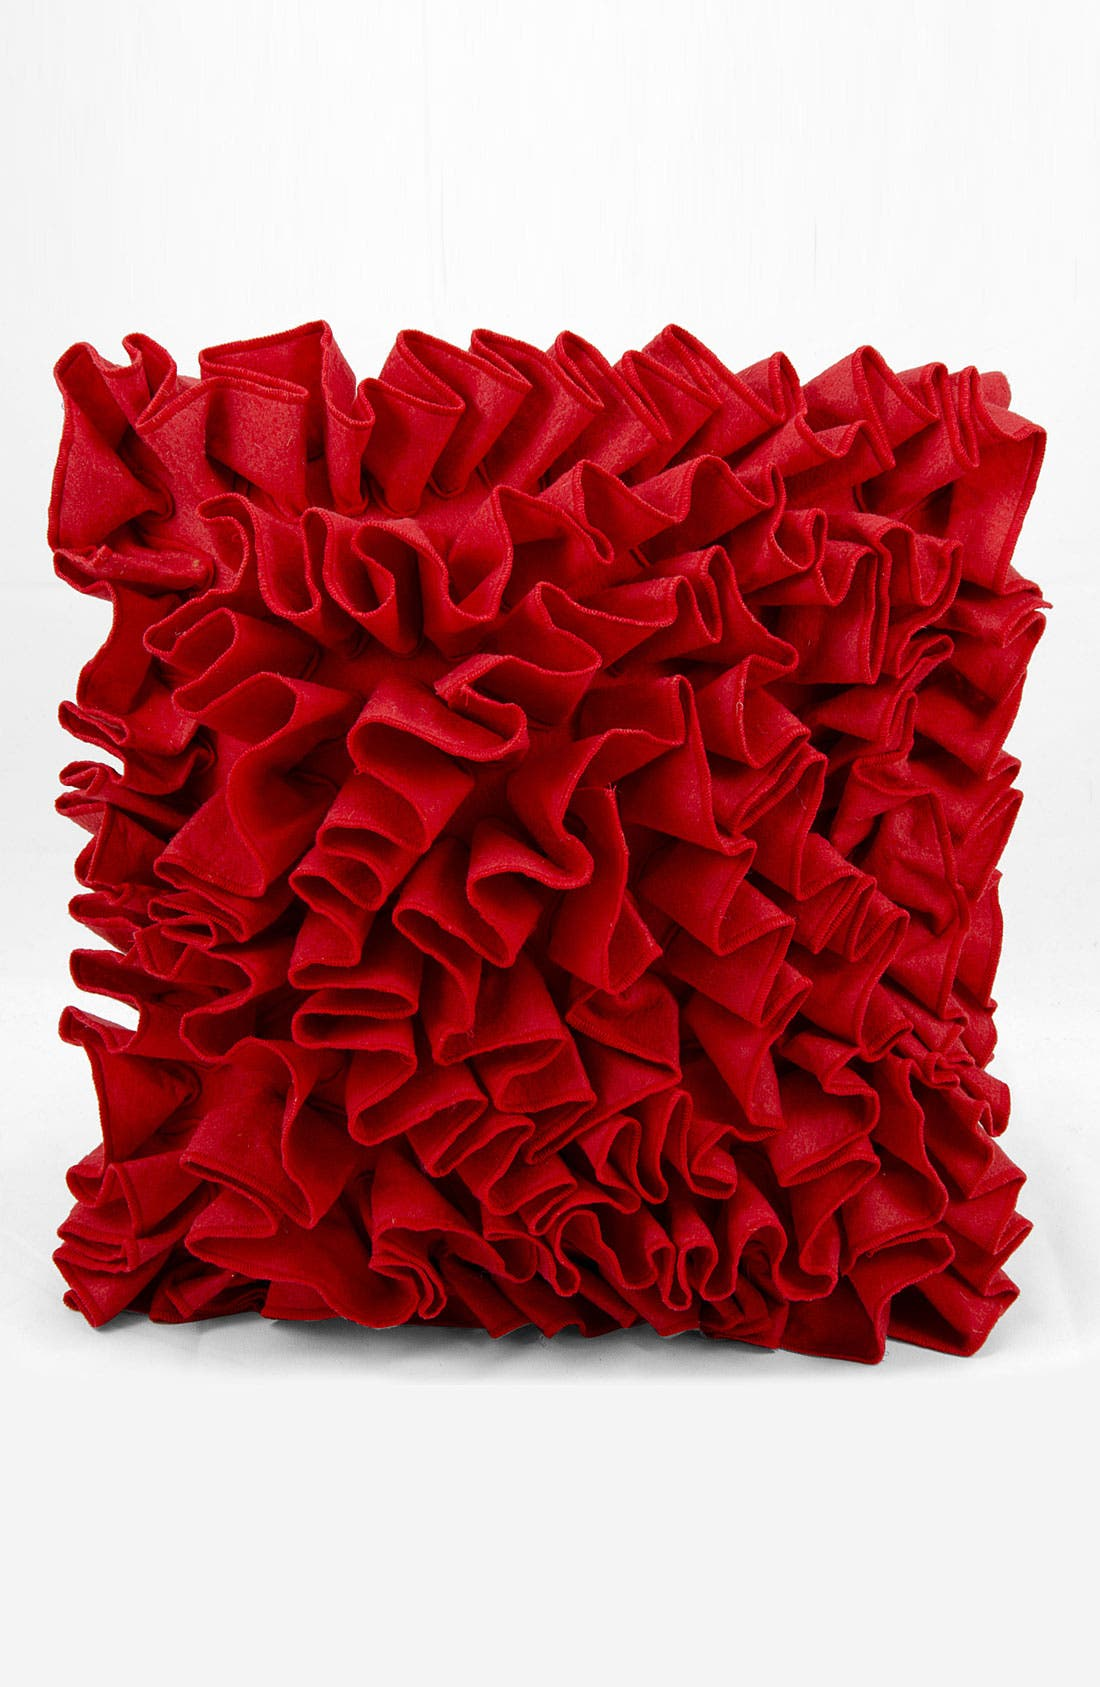 Alternate Image 1 Selected - Mina Victory Ruffle Felt Pillow